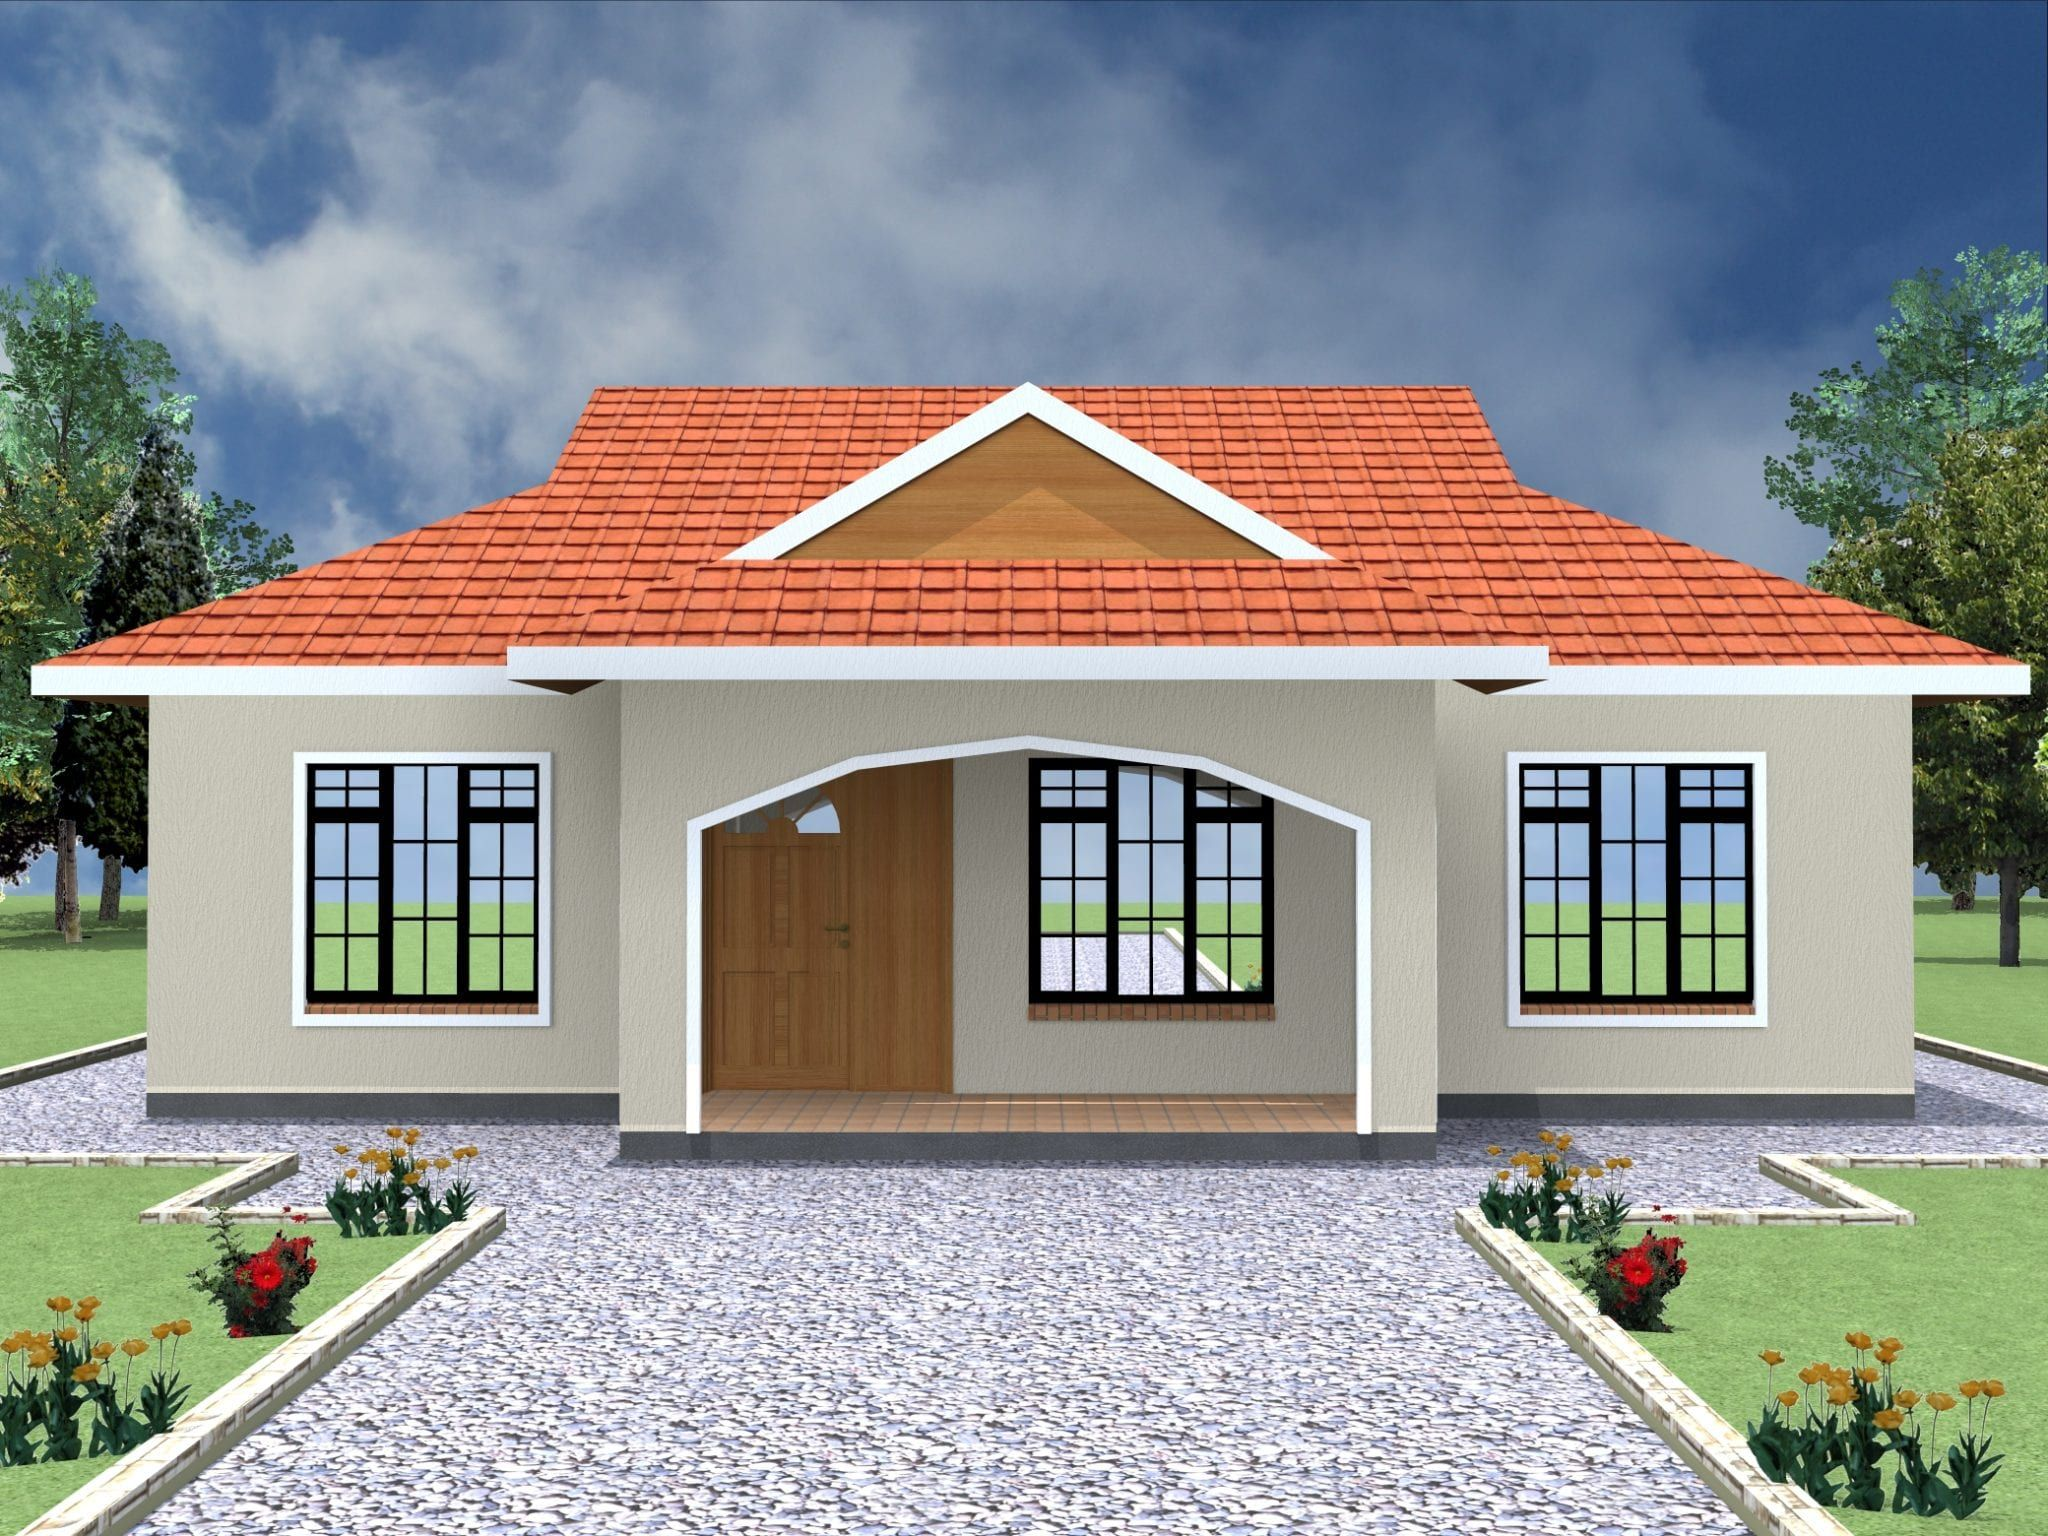 Simple 2 Bedroom House Plans In Kenya Hpd Consult Two Bedroom House Design 2 Bedroom House Plans Bedroom House Plans